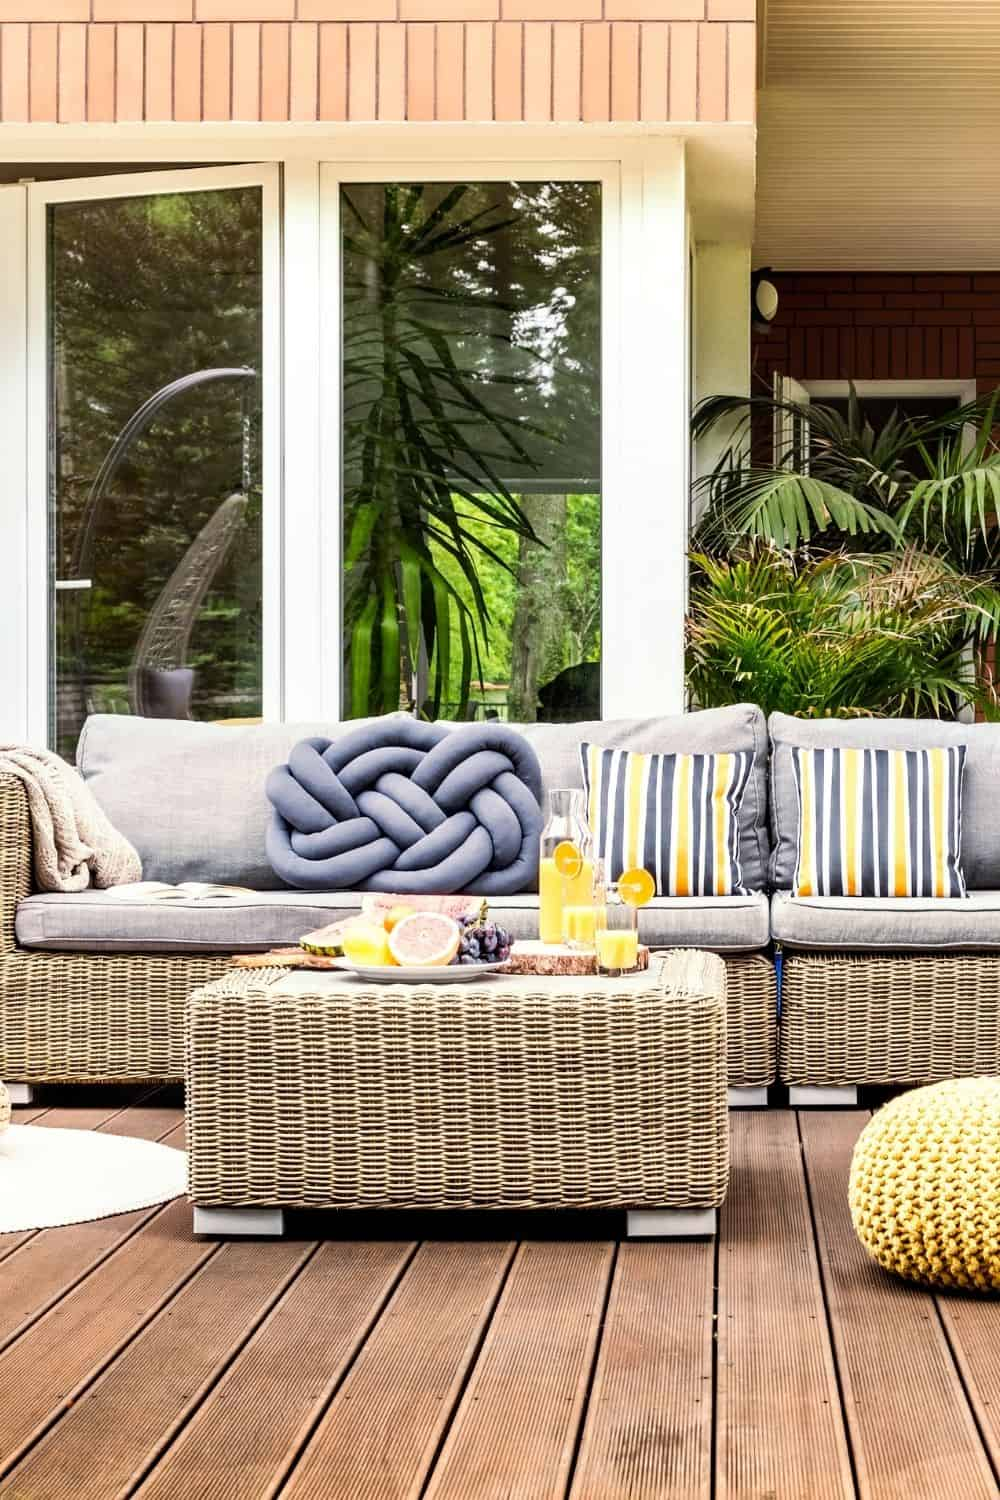 Outdoor couch with gray cushions and yellow accent pillows - Cozy Patio Ideas